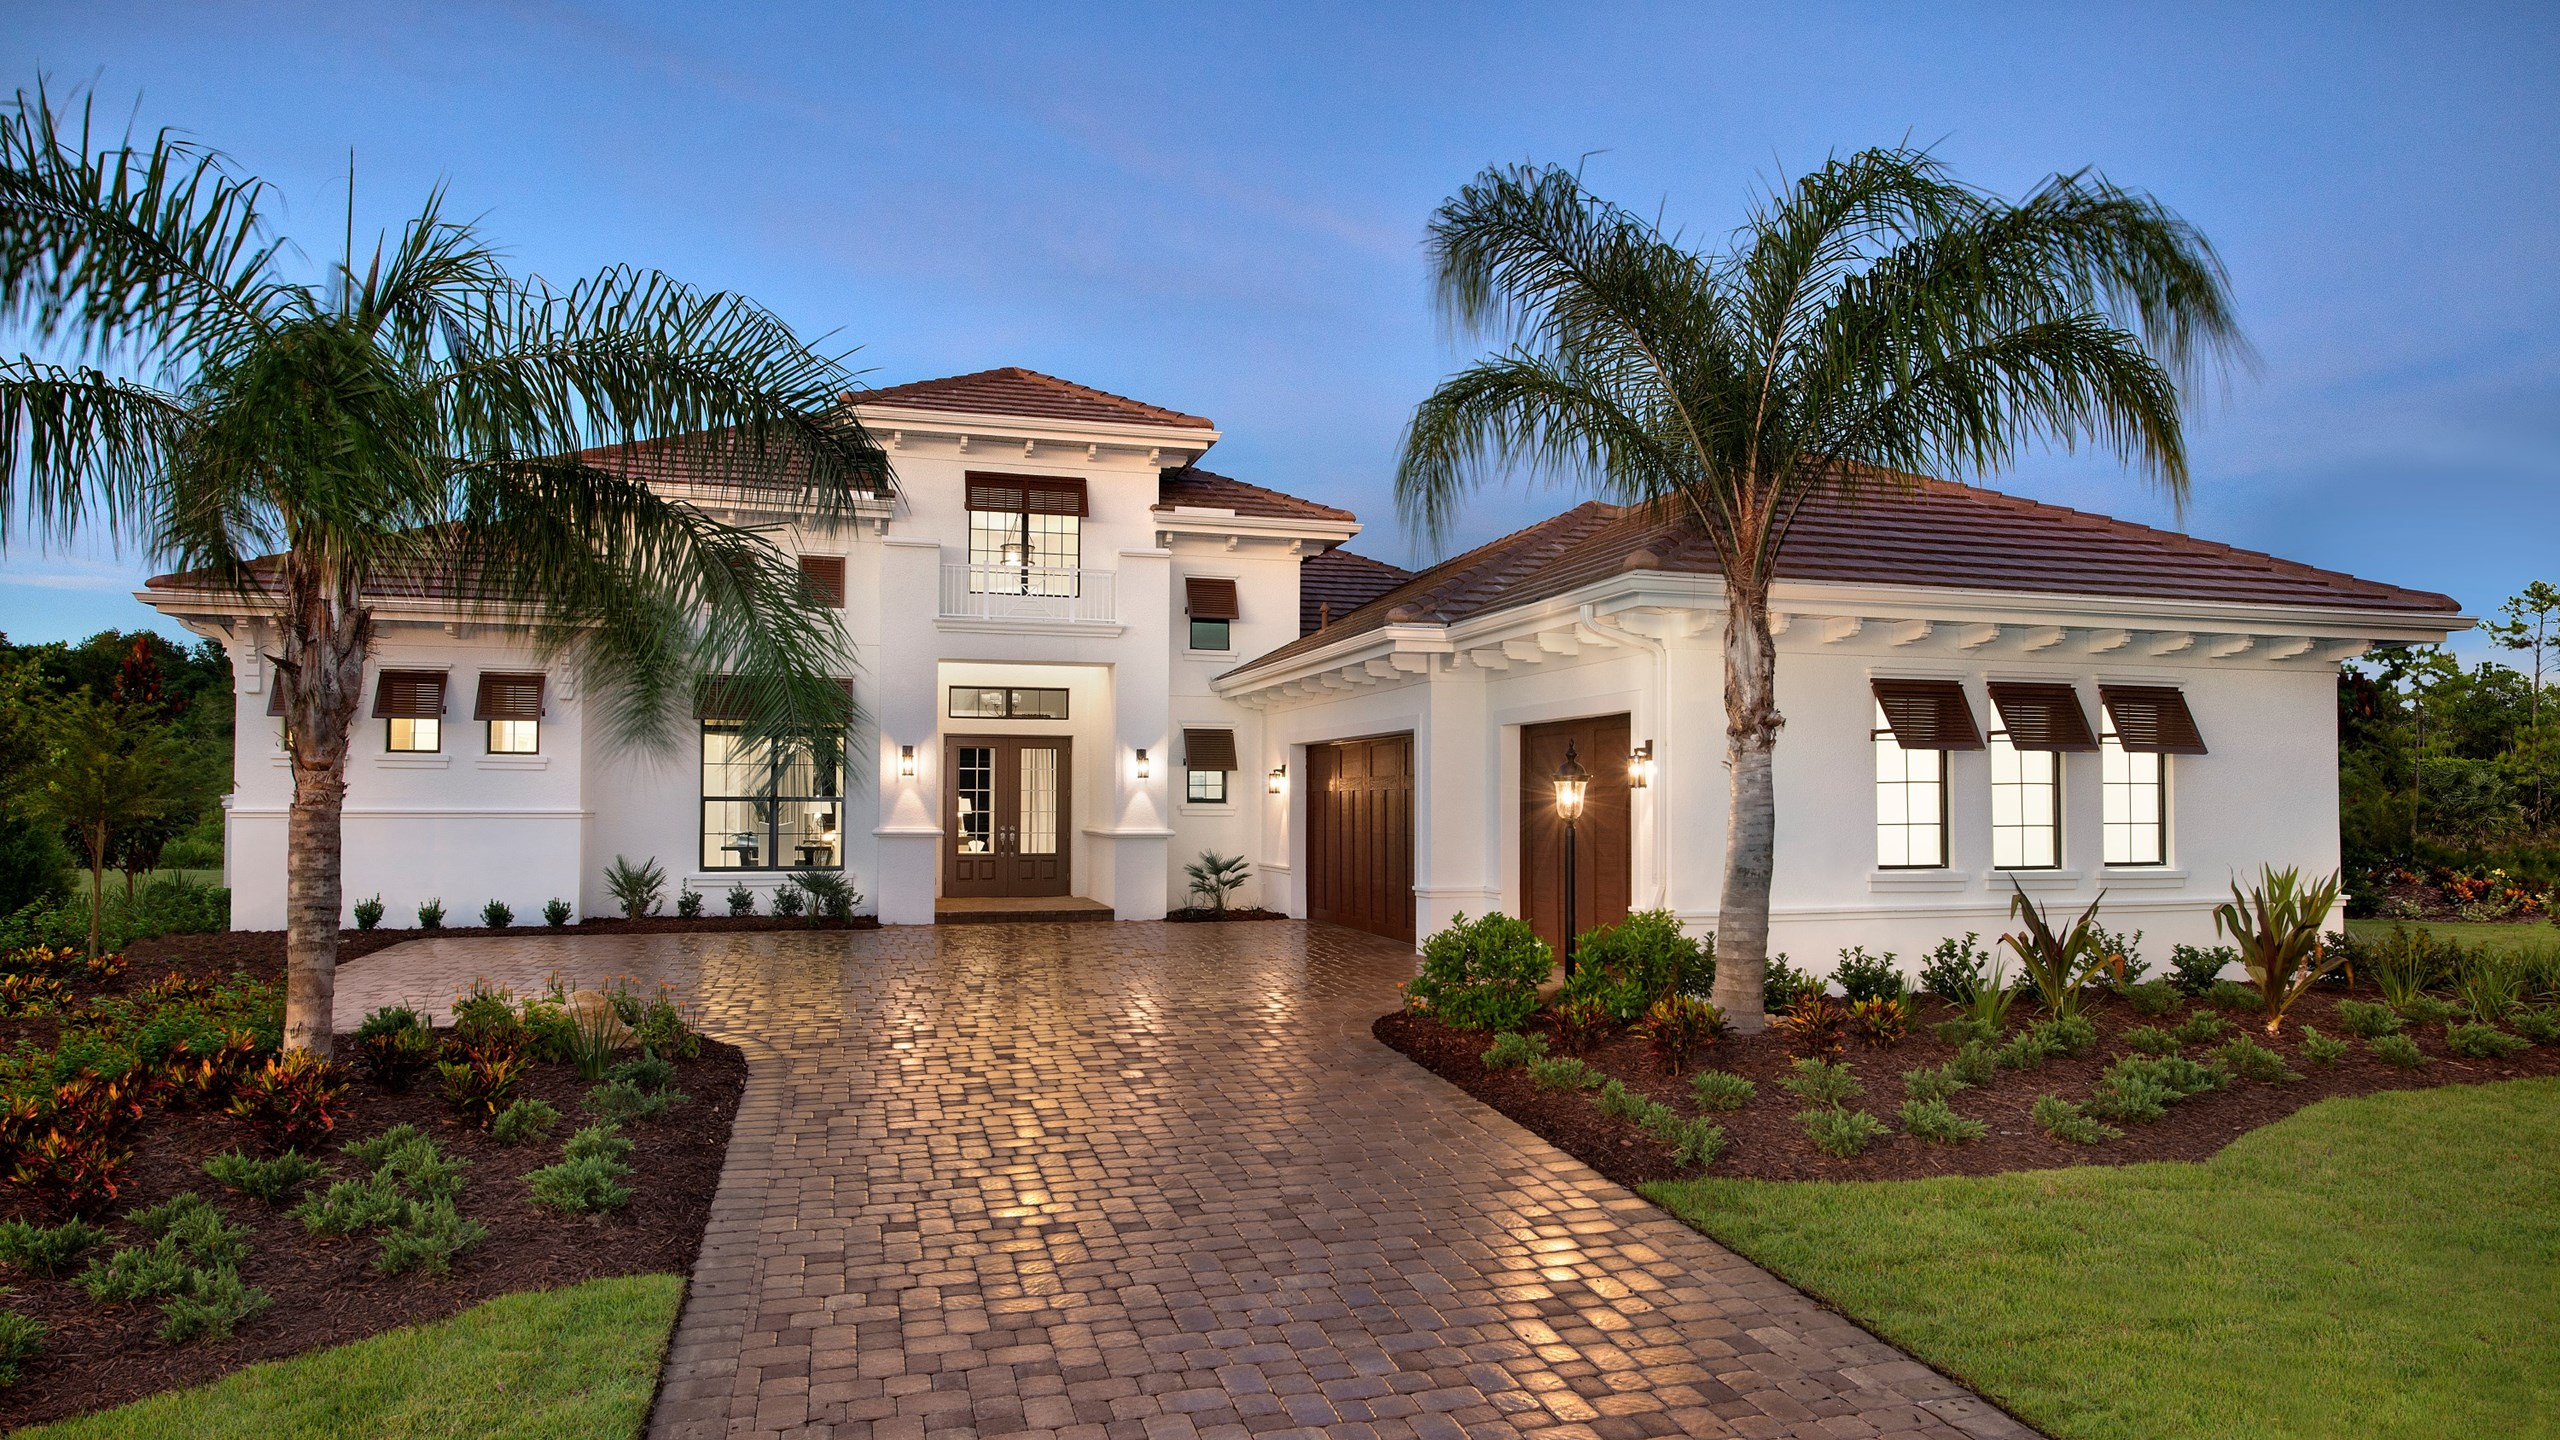 Free Service for Home Buyers | Lakewood Ranch Florida Real Estate | Lakewood Ranch Realtor | New Homes for Sale | Lakewood Ranch Florida